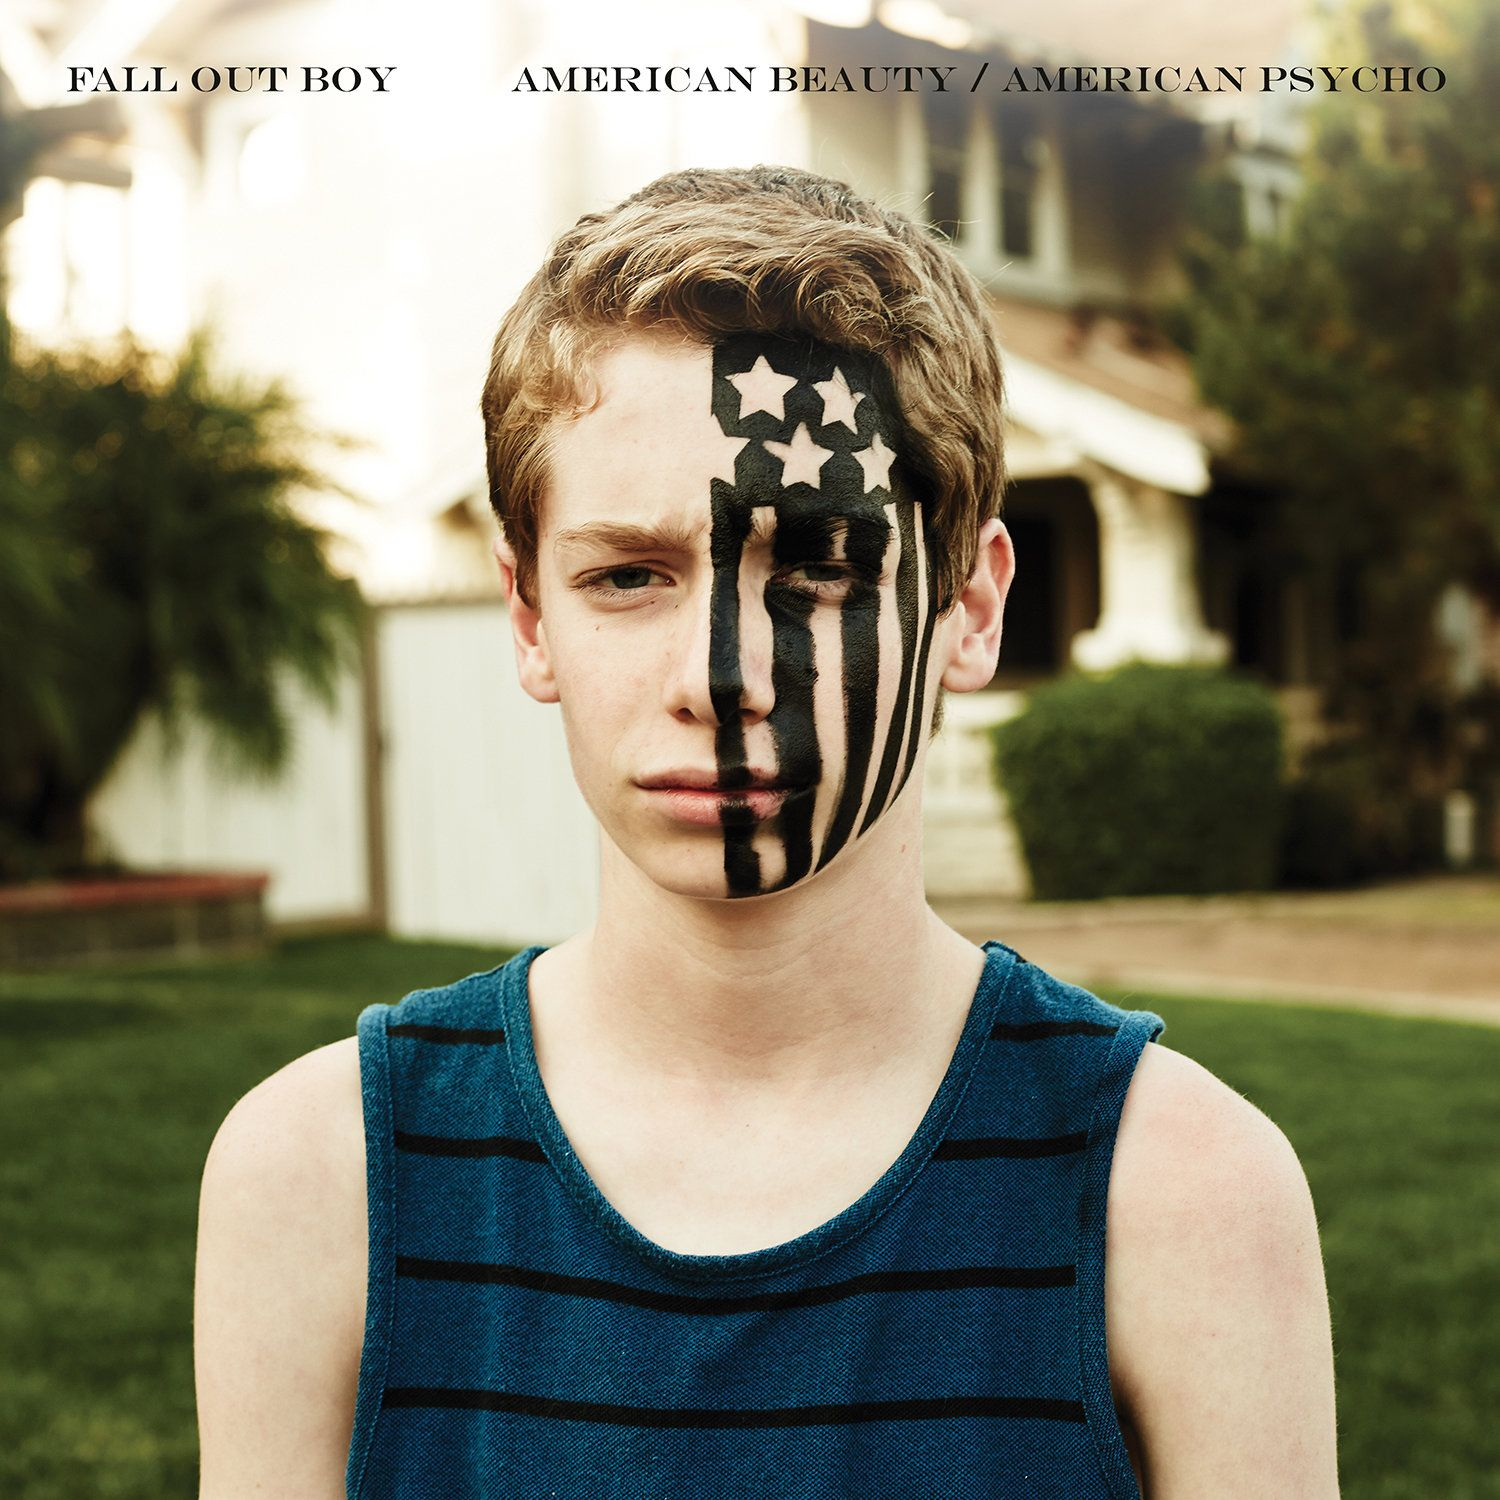 Fall Out Boy - American Beauty / American Psycho album cover